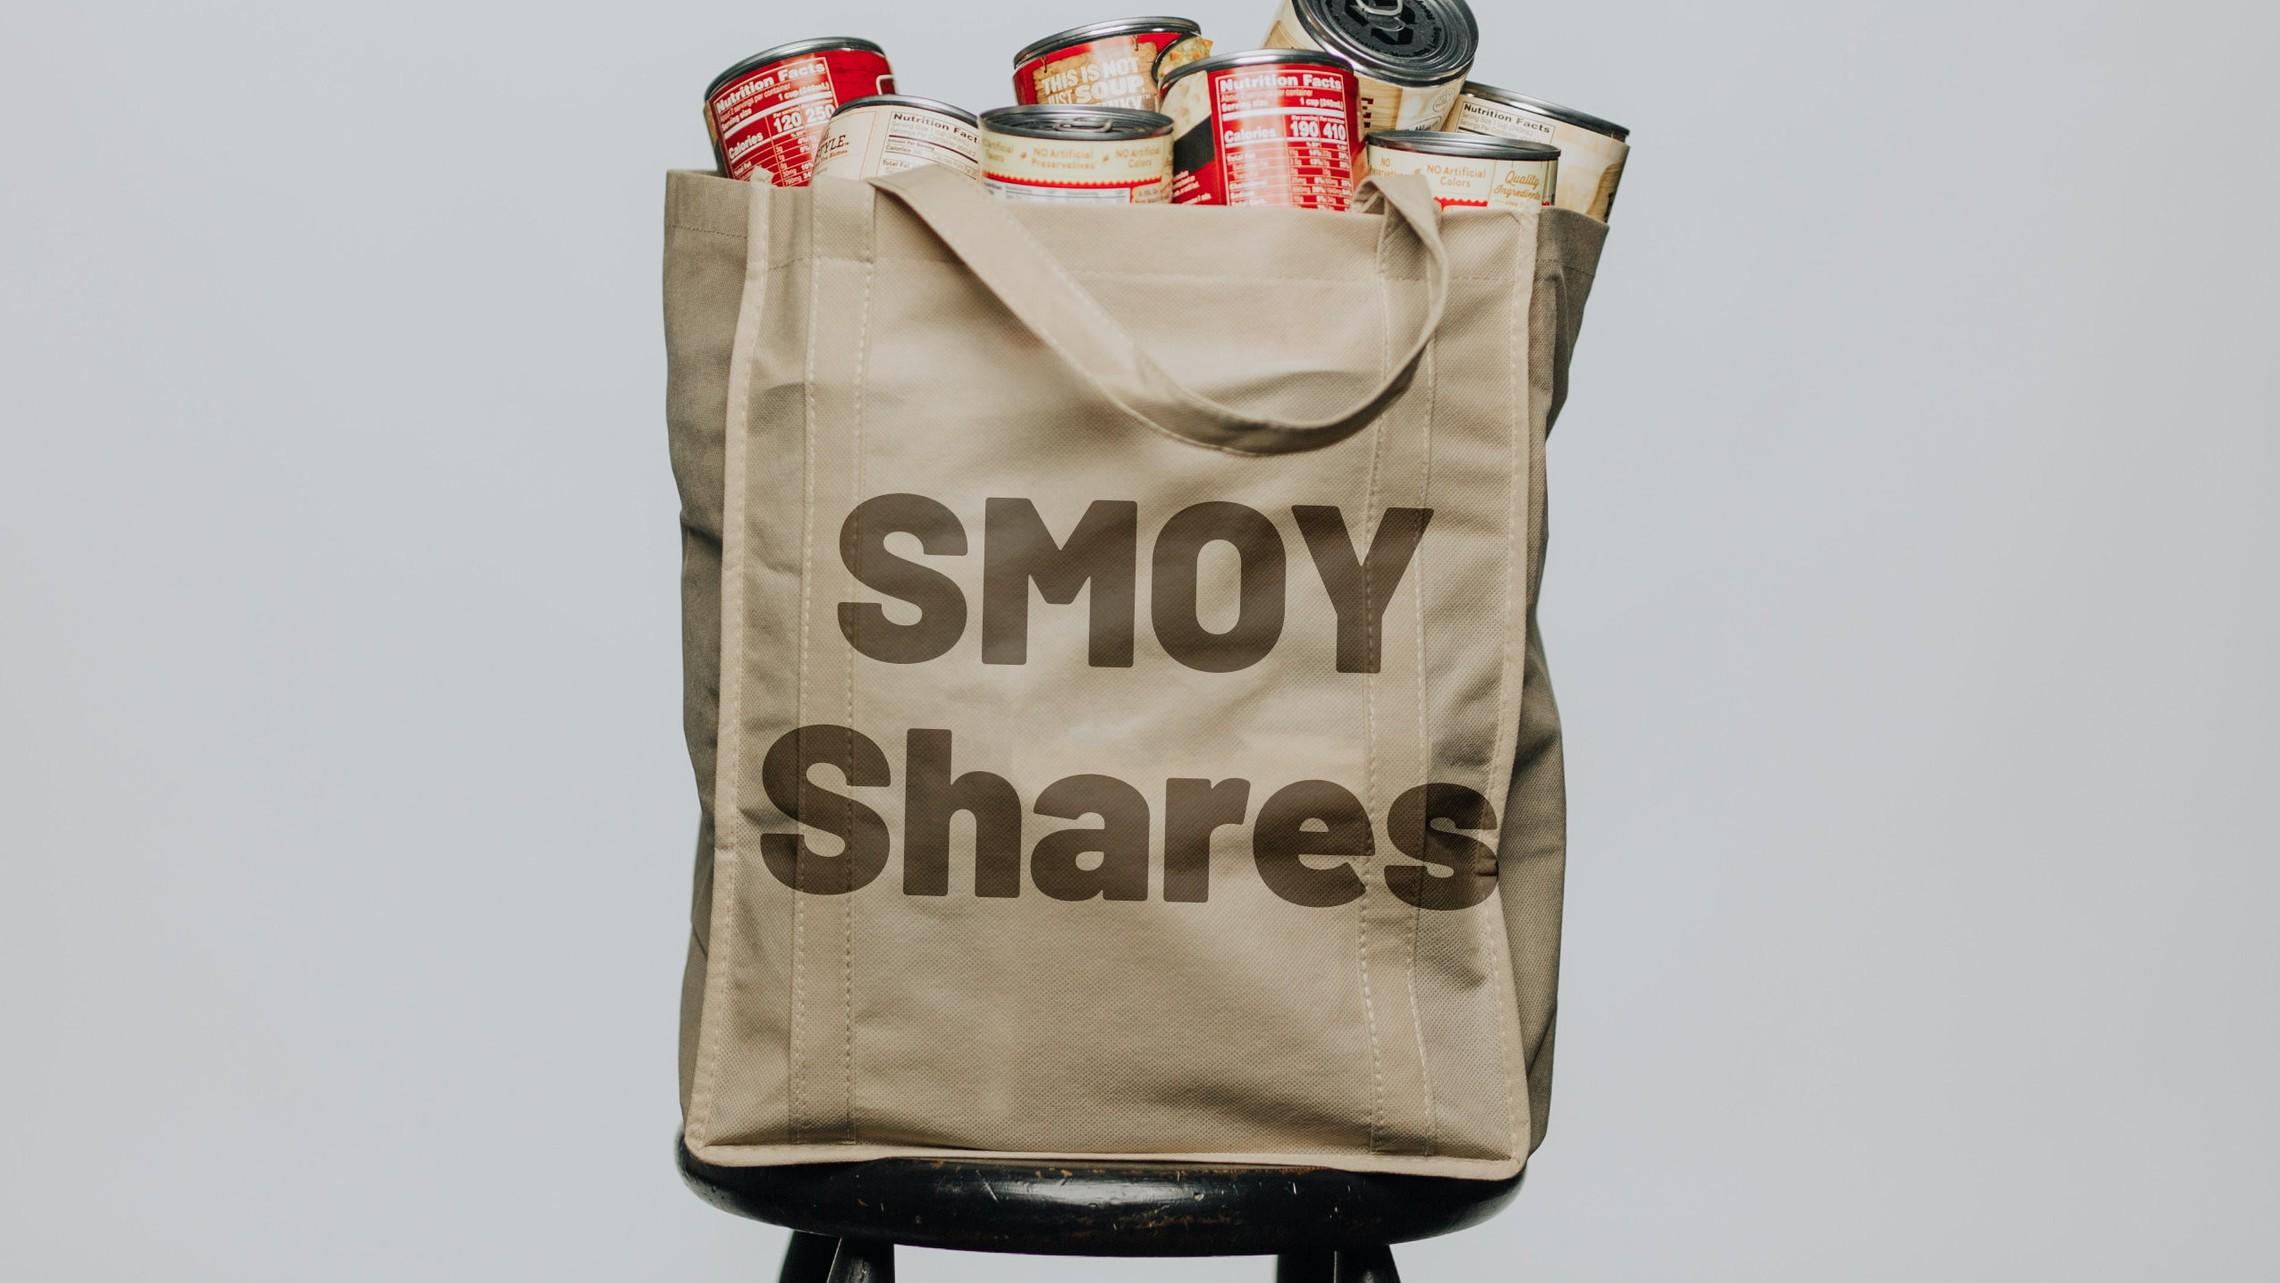 Smoy Shares